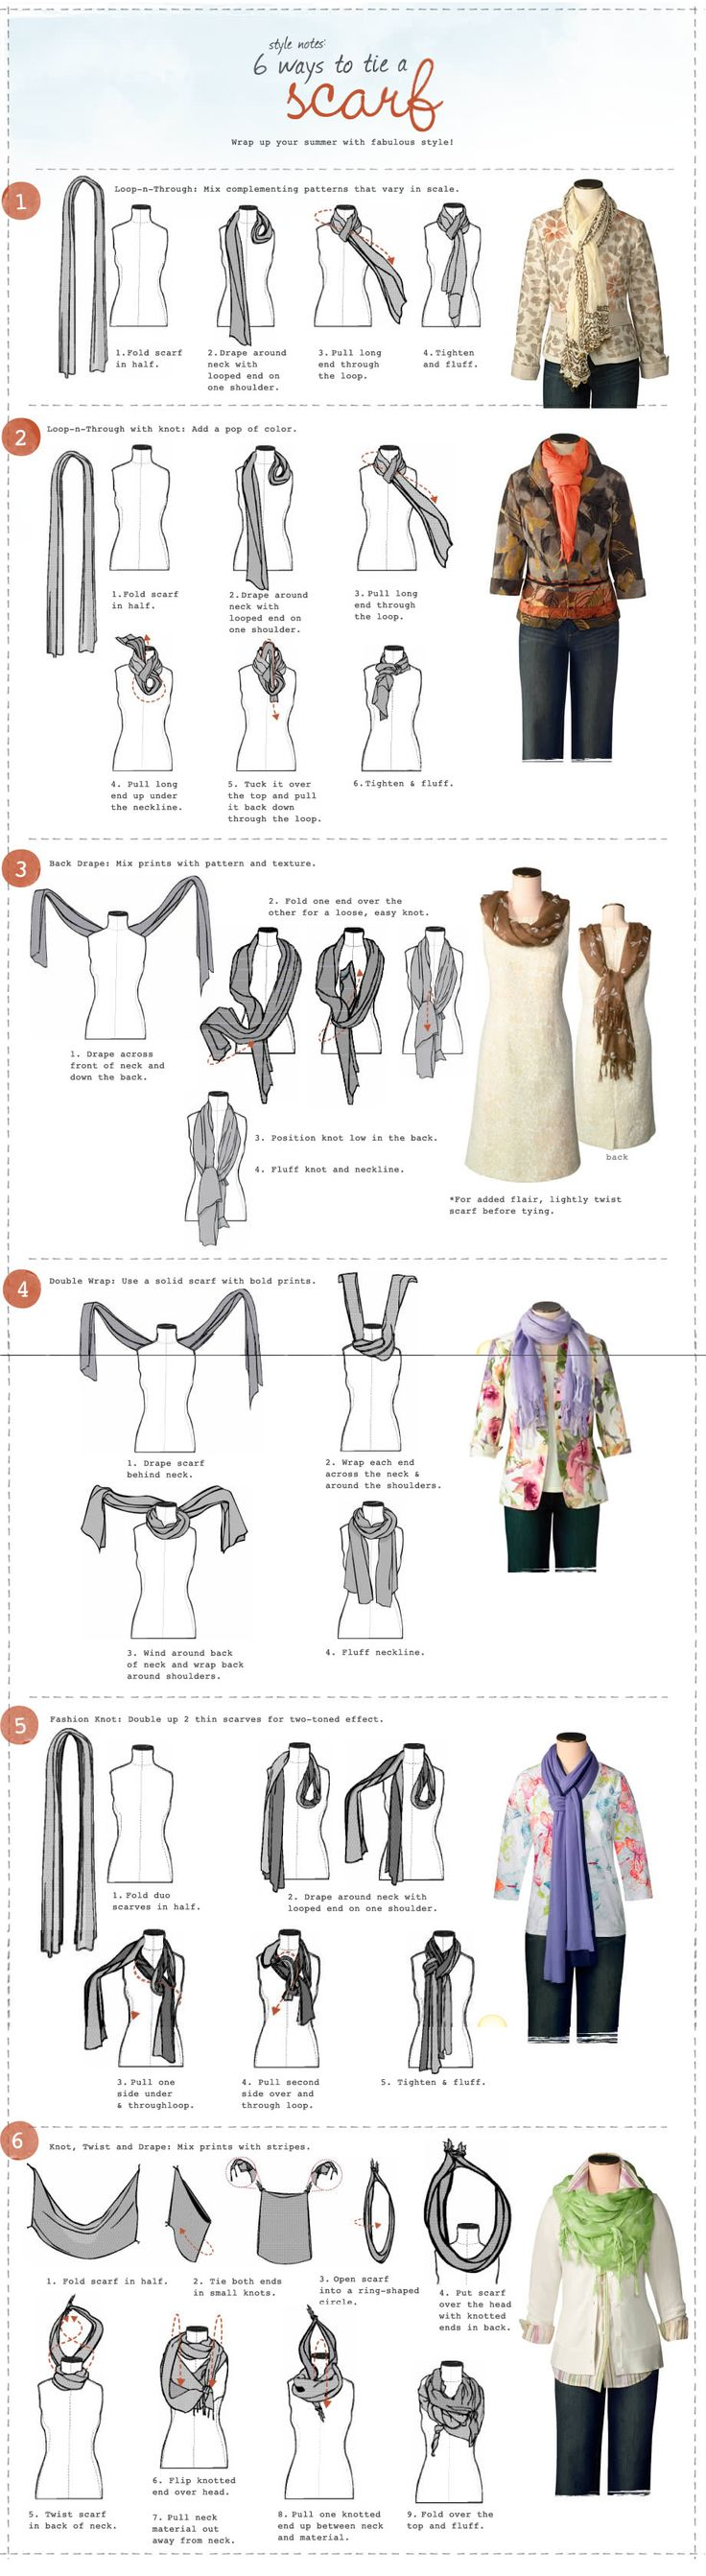 How To Tie A Scarf: Image Illustrated & 37 Different Ways To